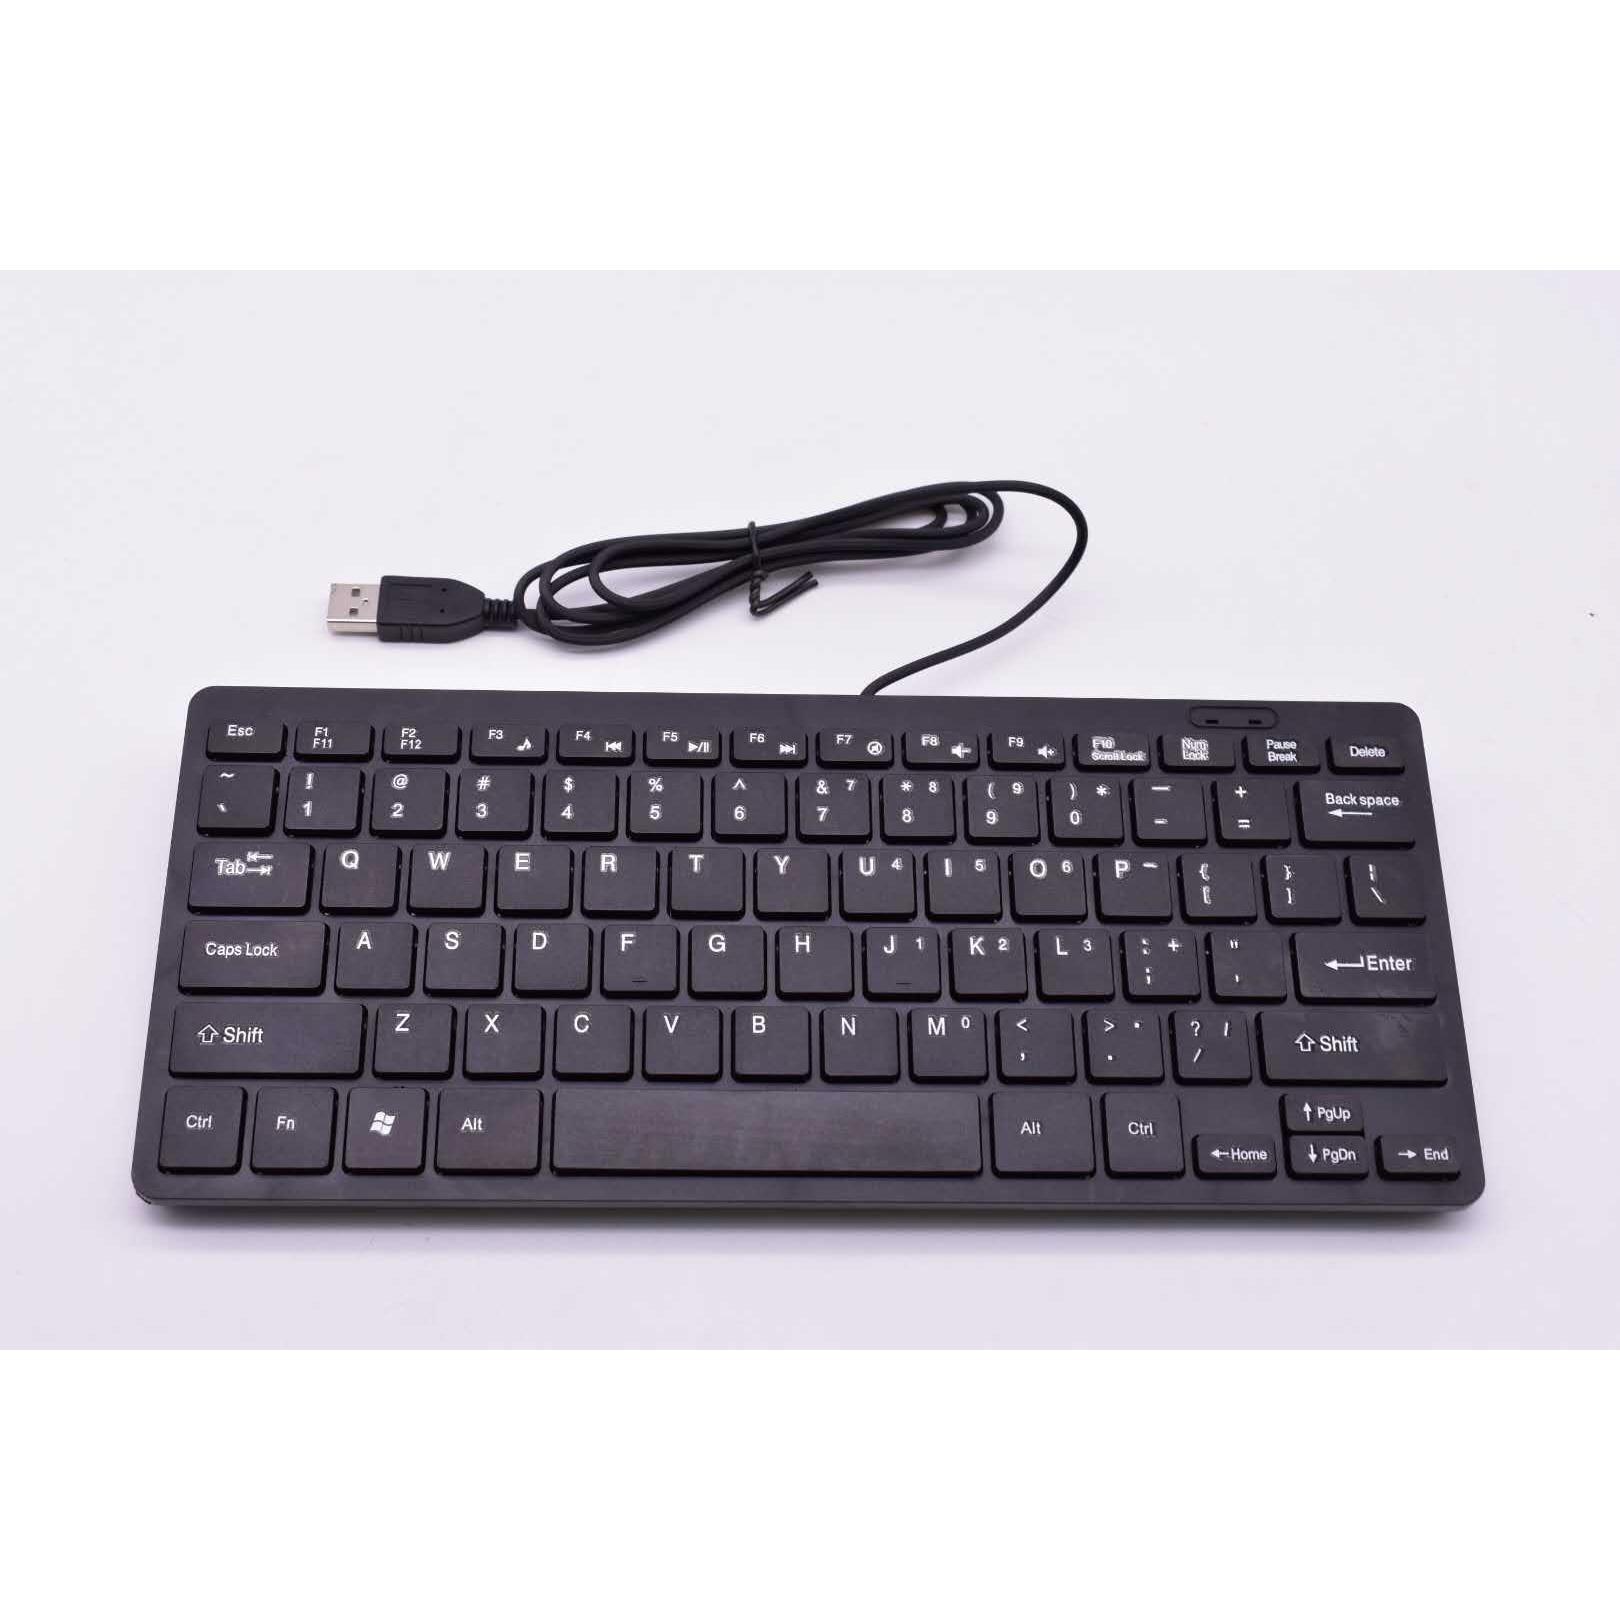 Computer Keyboards For Sale Pc Prices Brands Specs In Mouse Double Lens Micropack Excel Multimedia Usb Mini Keyboard Universal Laptop